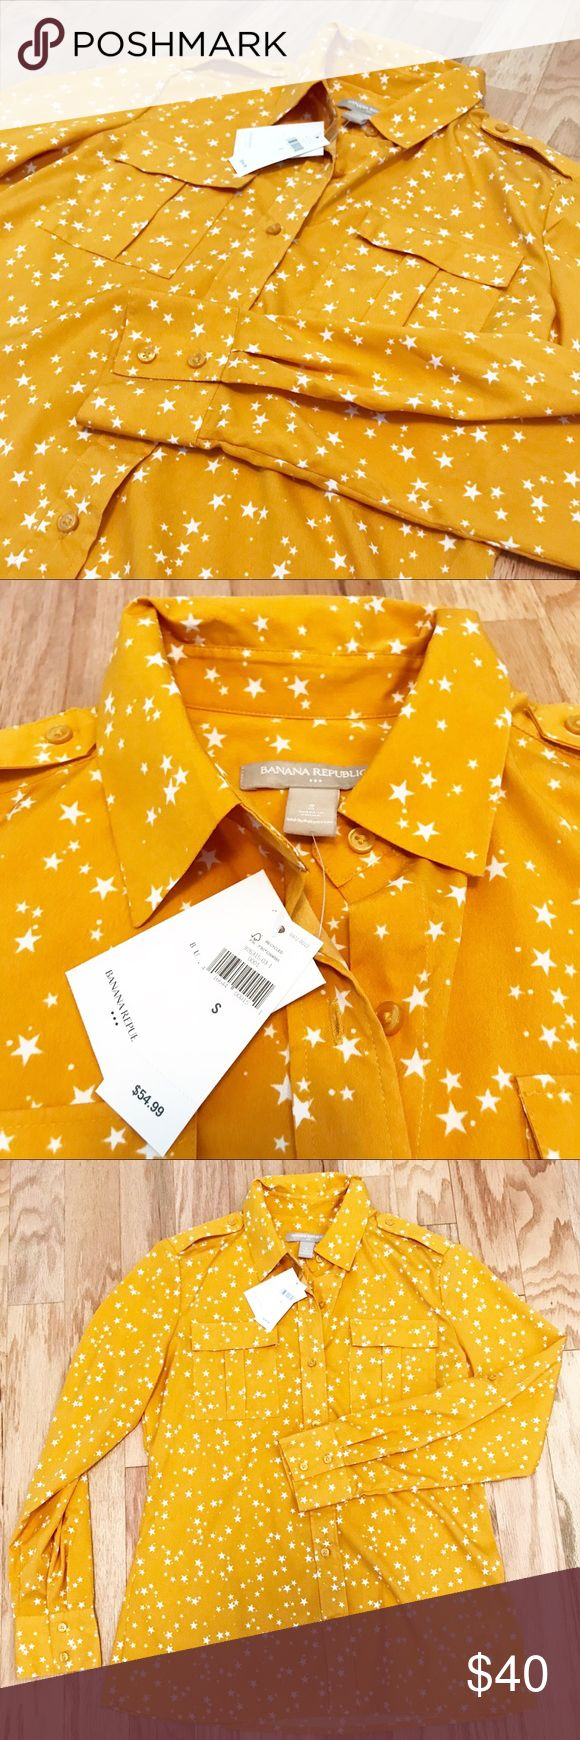 NWT‼️ Banana Republic Button Down Star Mustard Beautiful NWT brand new with tags mustard button up shirt. Military style and absolutely gorgeous gold / golden / mustard color with stars!! ⭐️ stars are cream / white! Top / shirt / blouse that is silky material! Collared sleeves can be worn long or rolled and Button for elbow / 3/4 length starry Banana Republic Tops Button Down Shirts